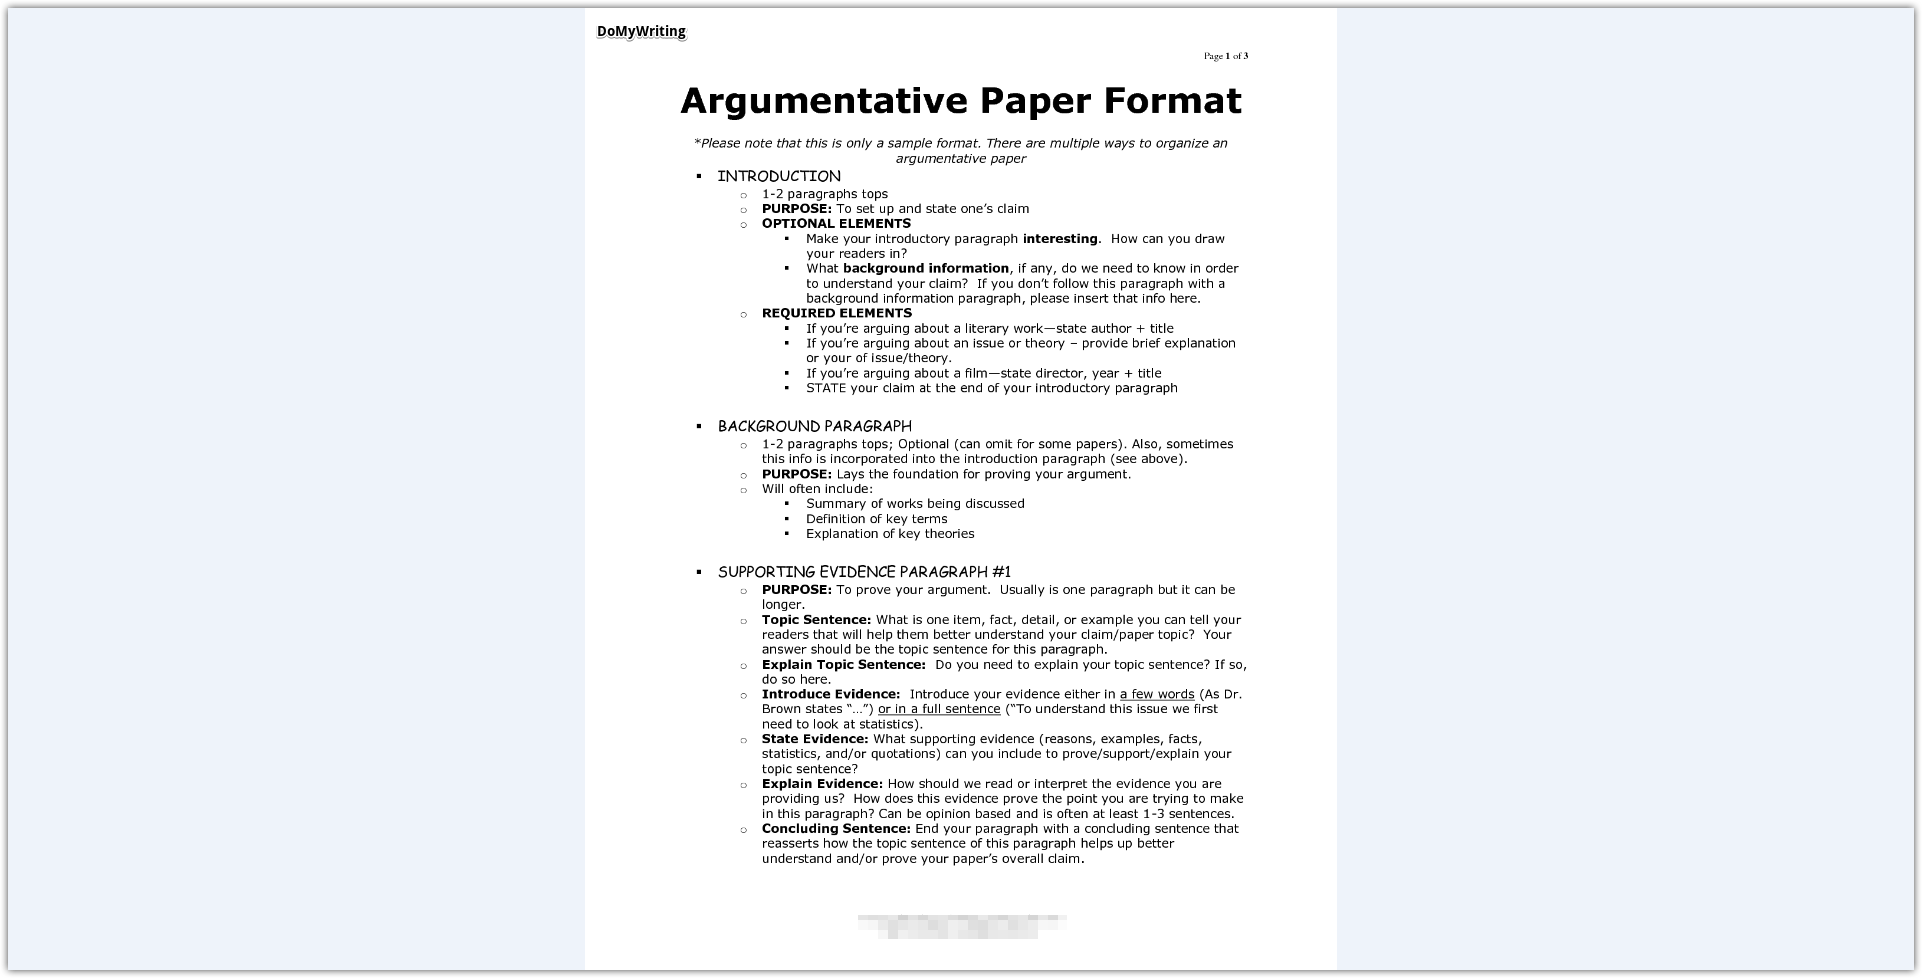 007 Argumentative Essay Format Argument Wonderful Outline Examples Template Pdf Writing Middle School Full